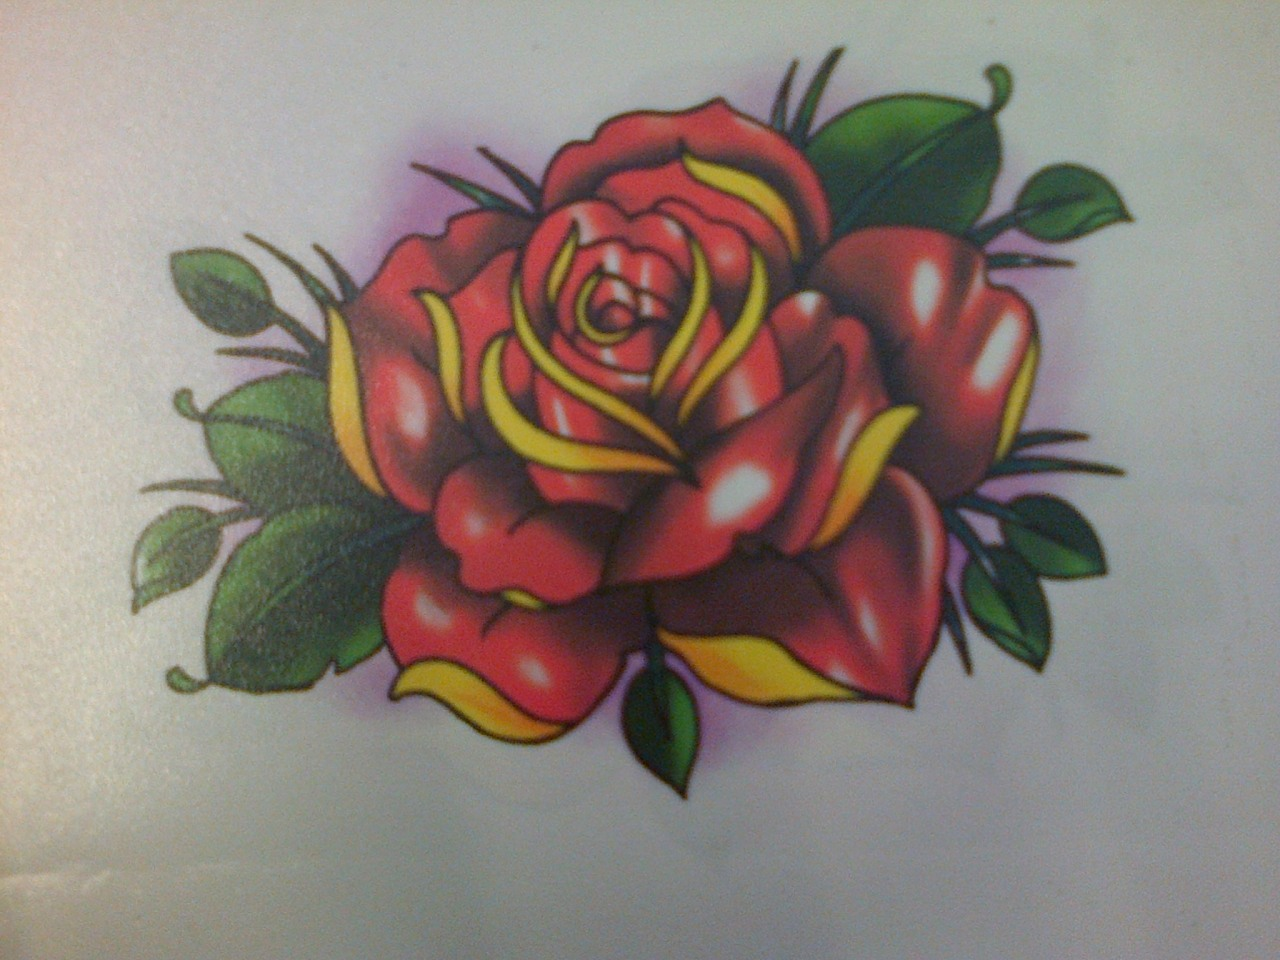 Next tattoo - 8 days left!